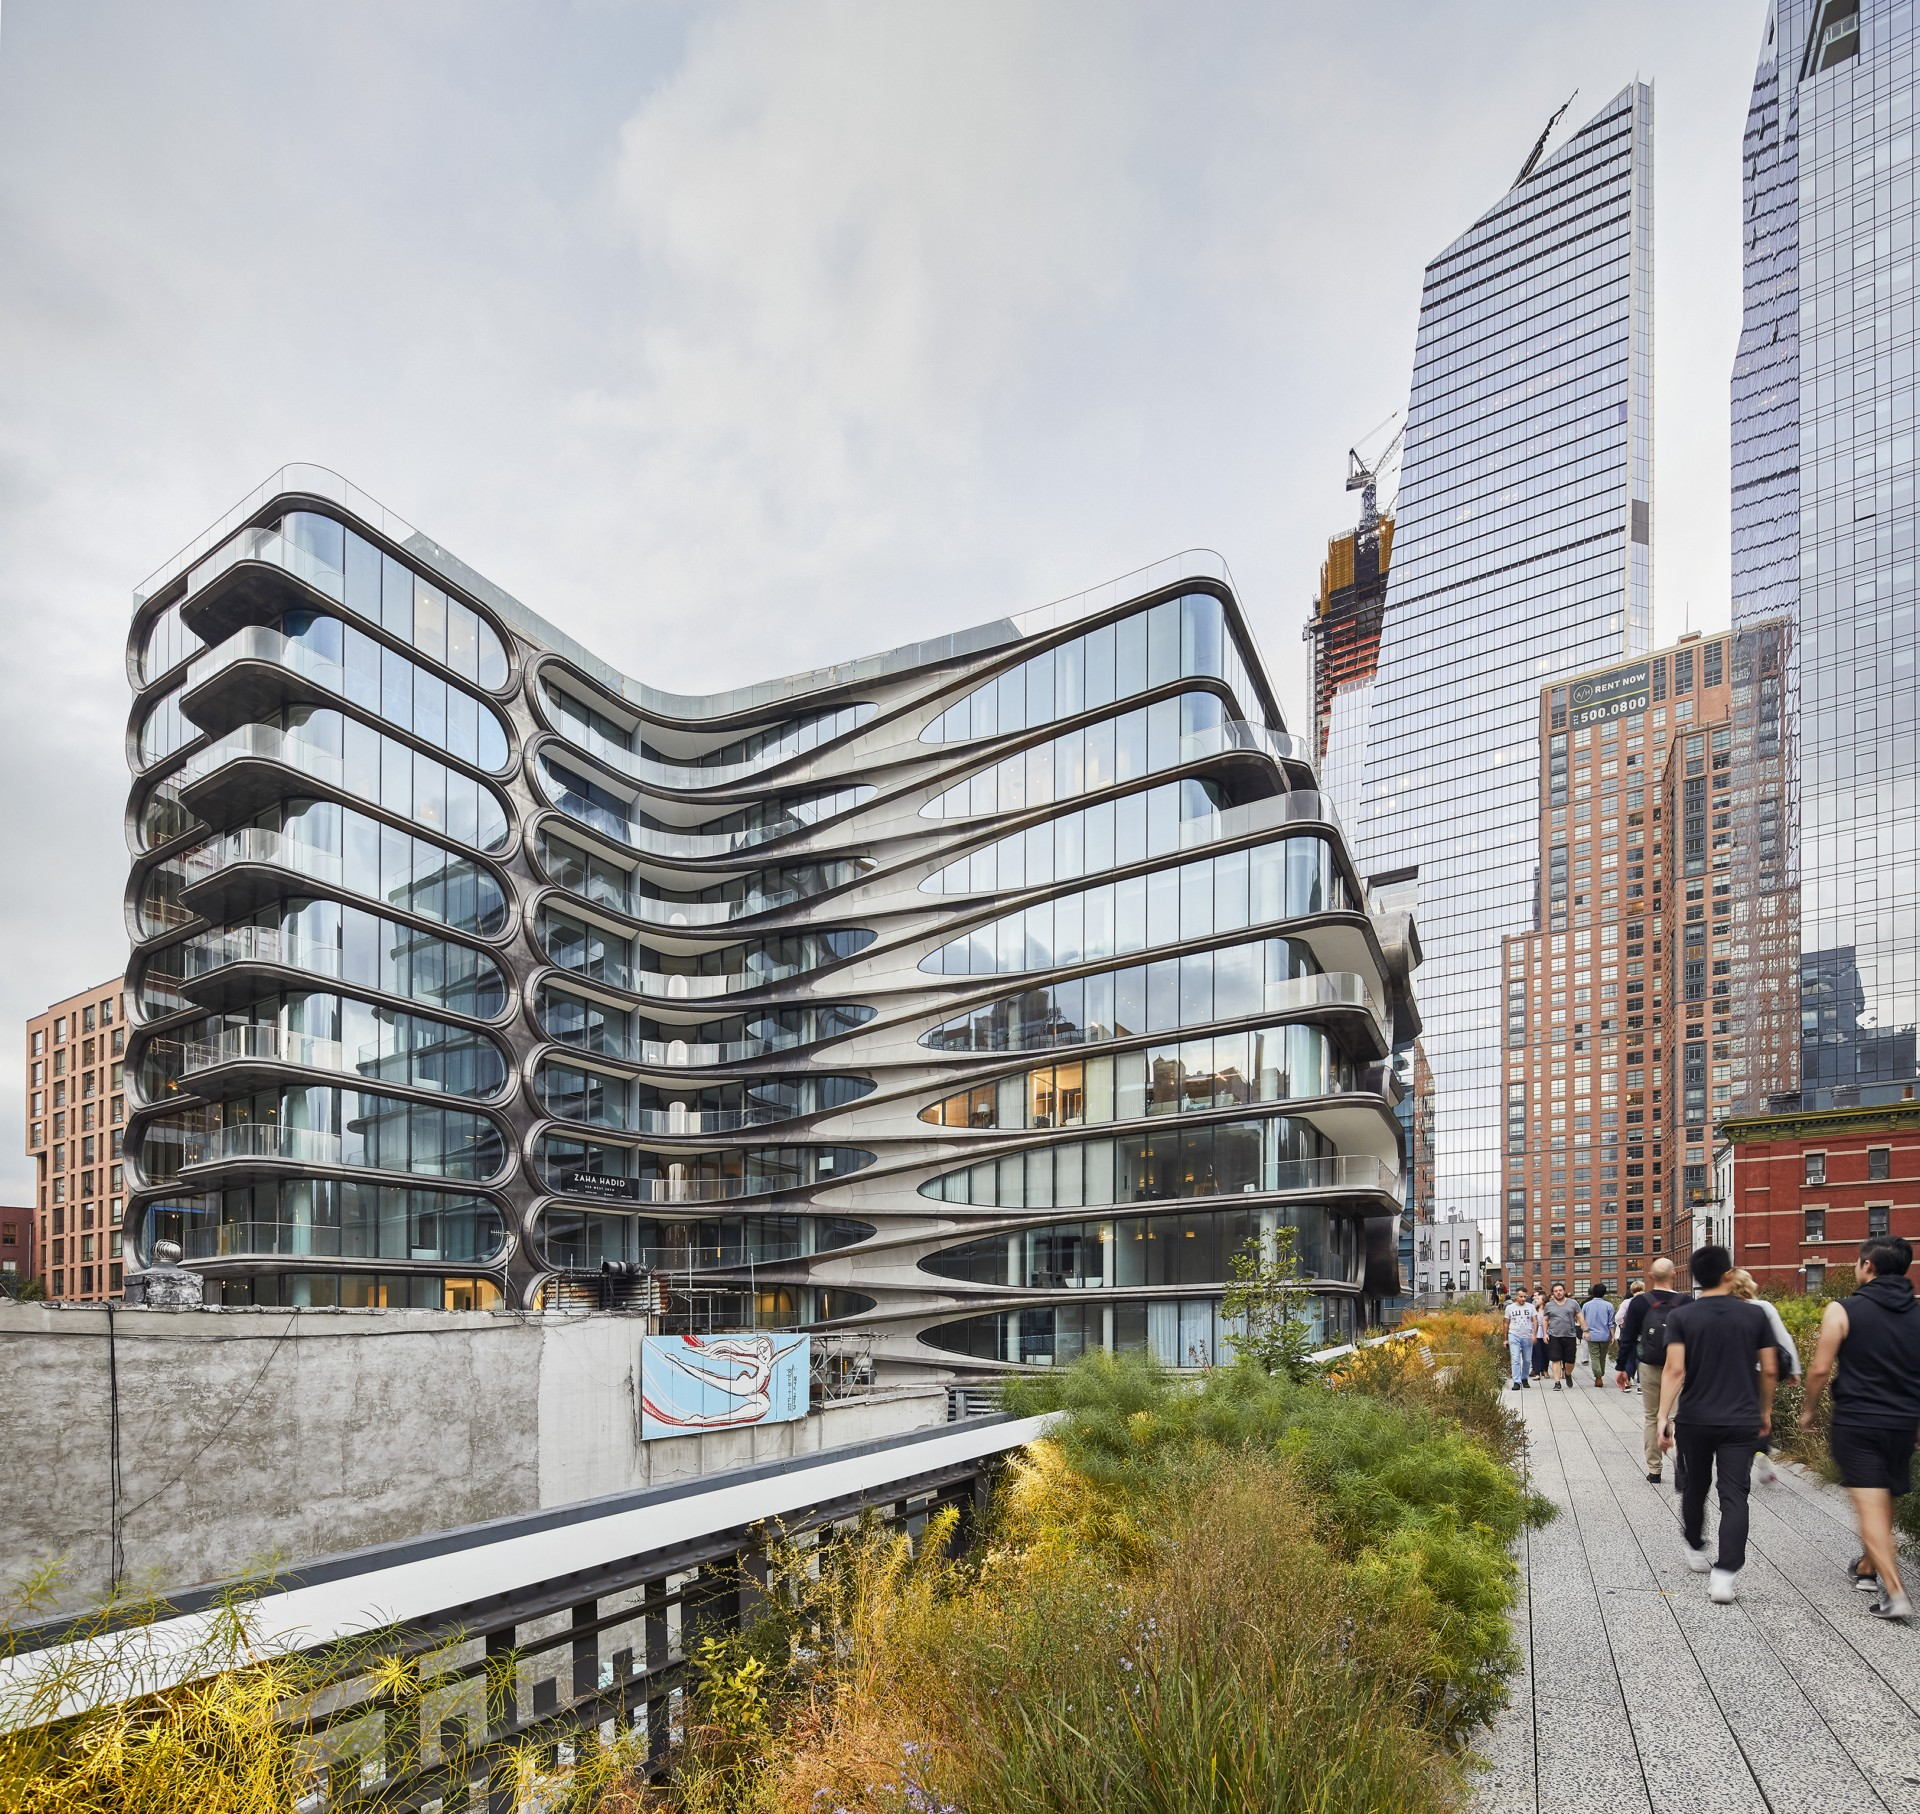 Zaha Hadid Architects 520 West 28th e le fotografie di Hufton+Crow